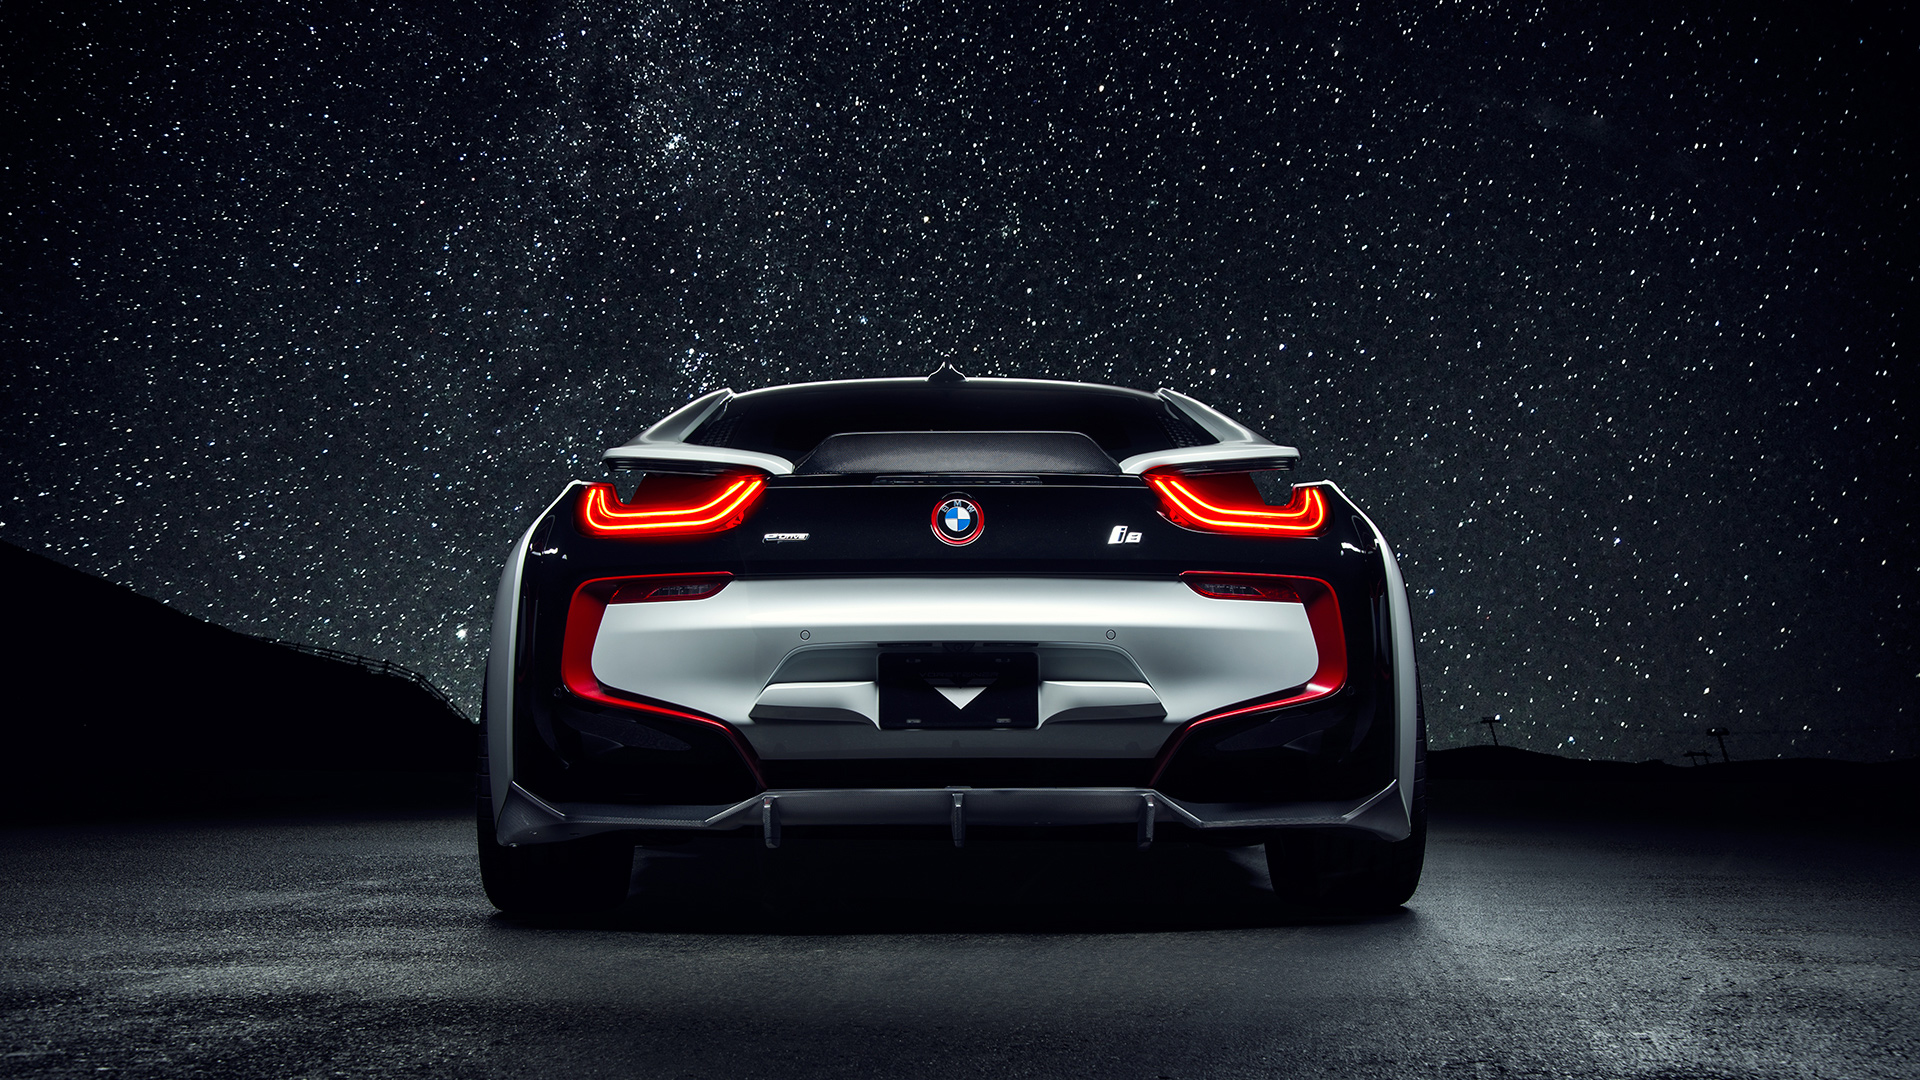 Bmw I8 Rear View Hd Wallpaper 64657 1920x1080px